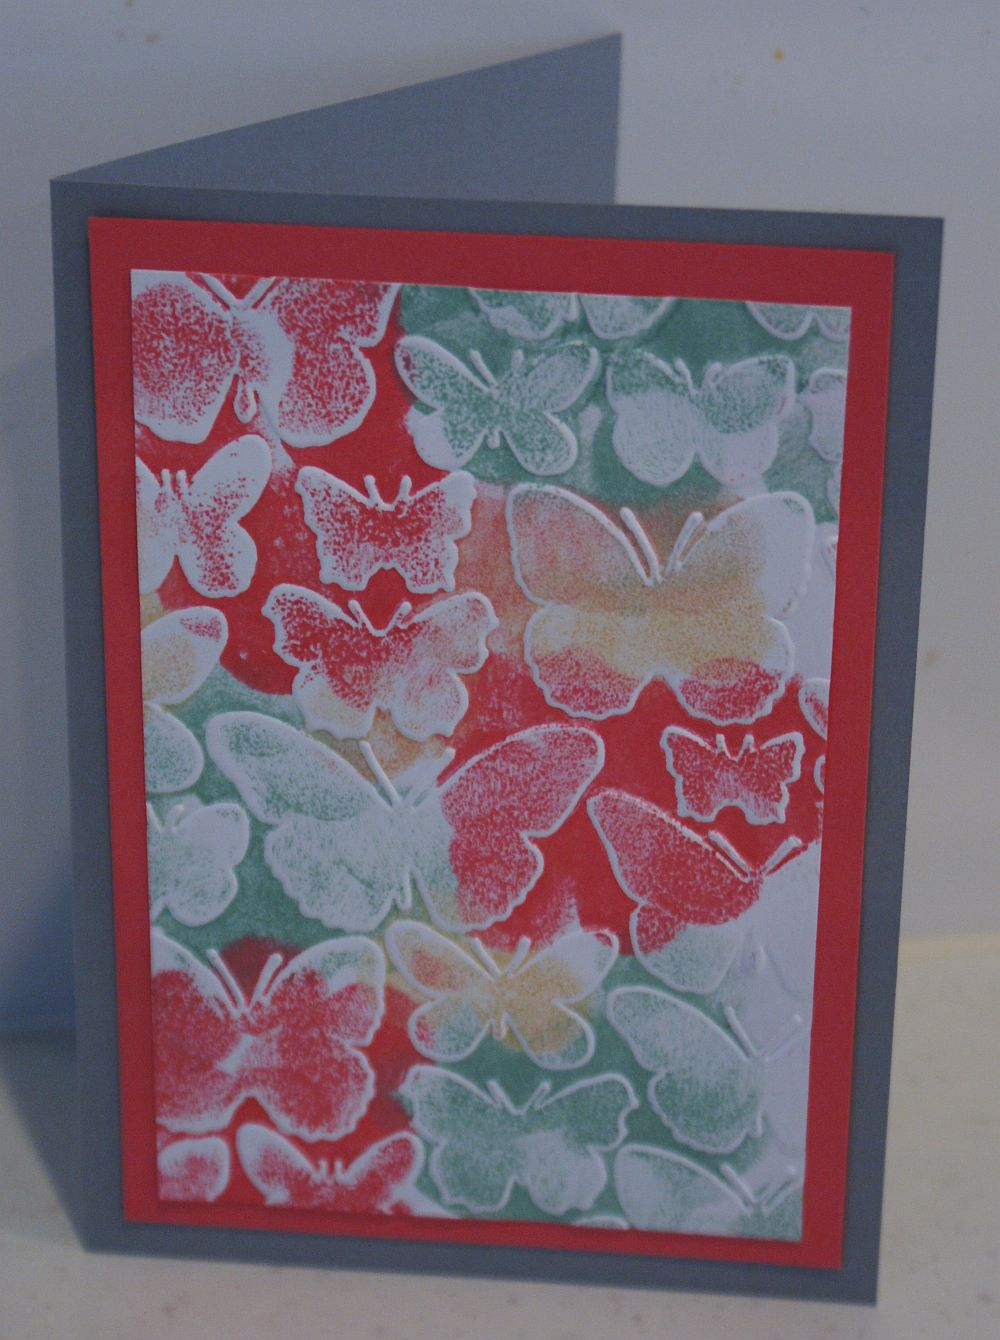 Ink and embossing creative challenge